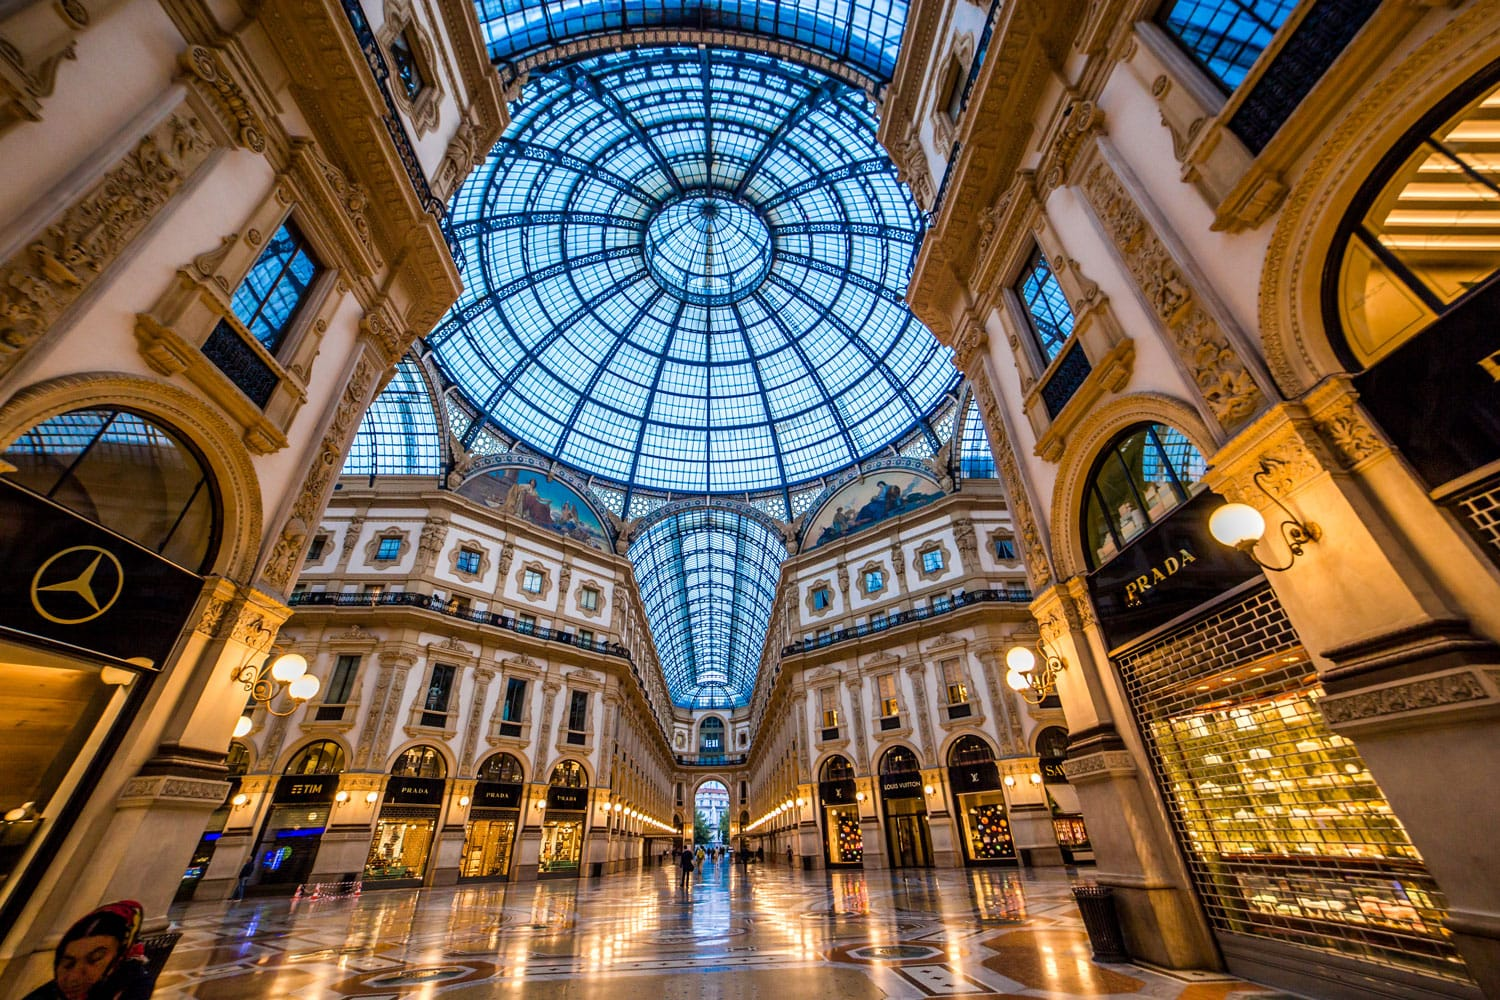 Luxury Stores in Galleria Vittorio Emanuele II - shopping mall in Milan, Italy